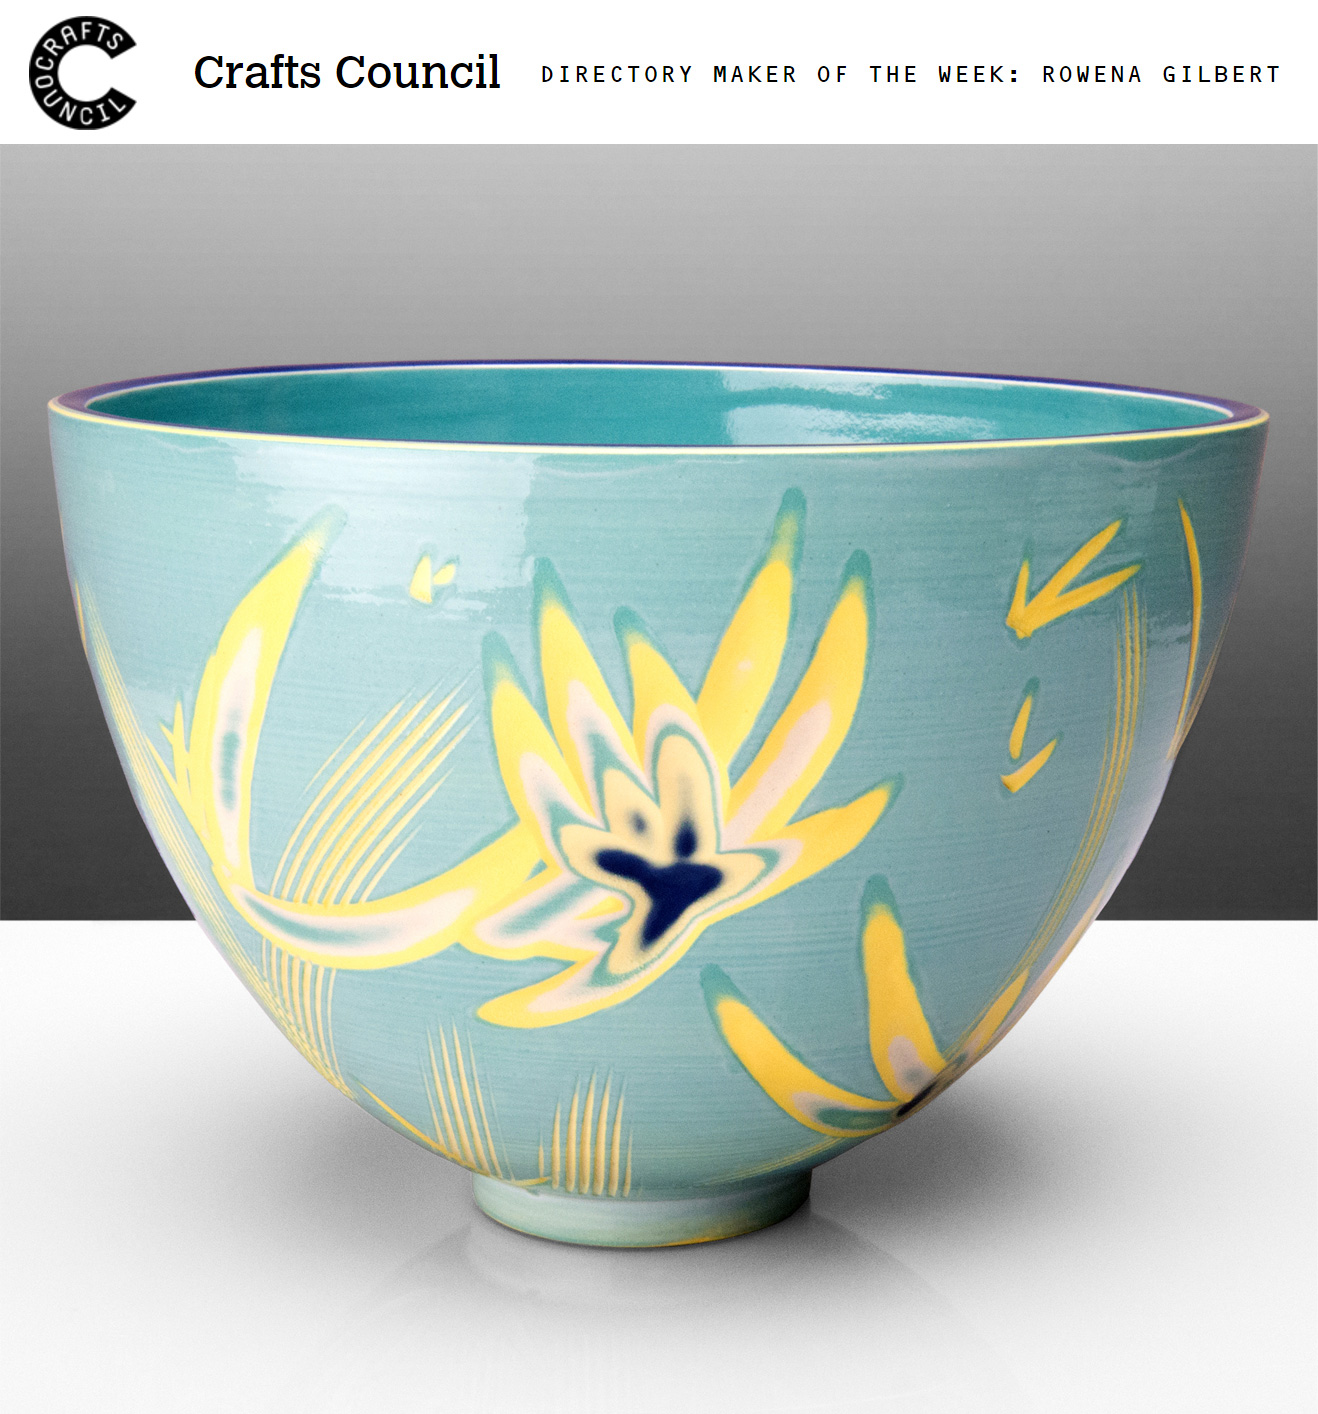 Crafts Council Directory Maker of the Week.  April 21, 2017